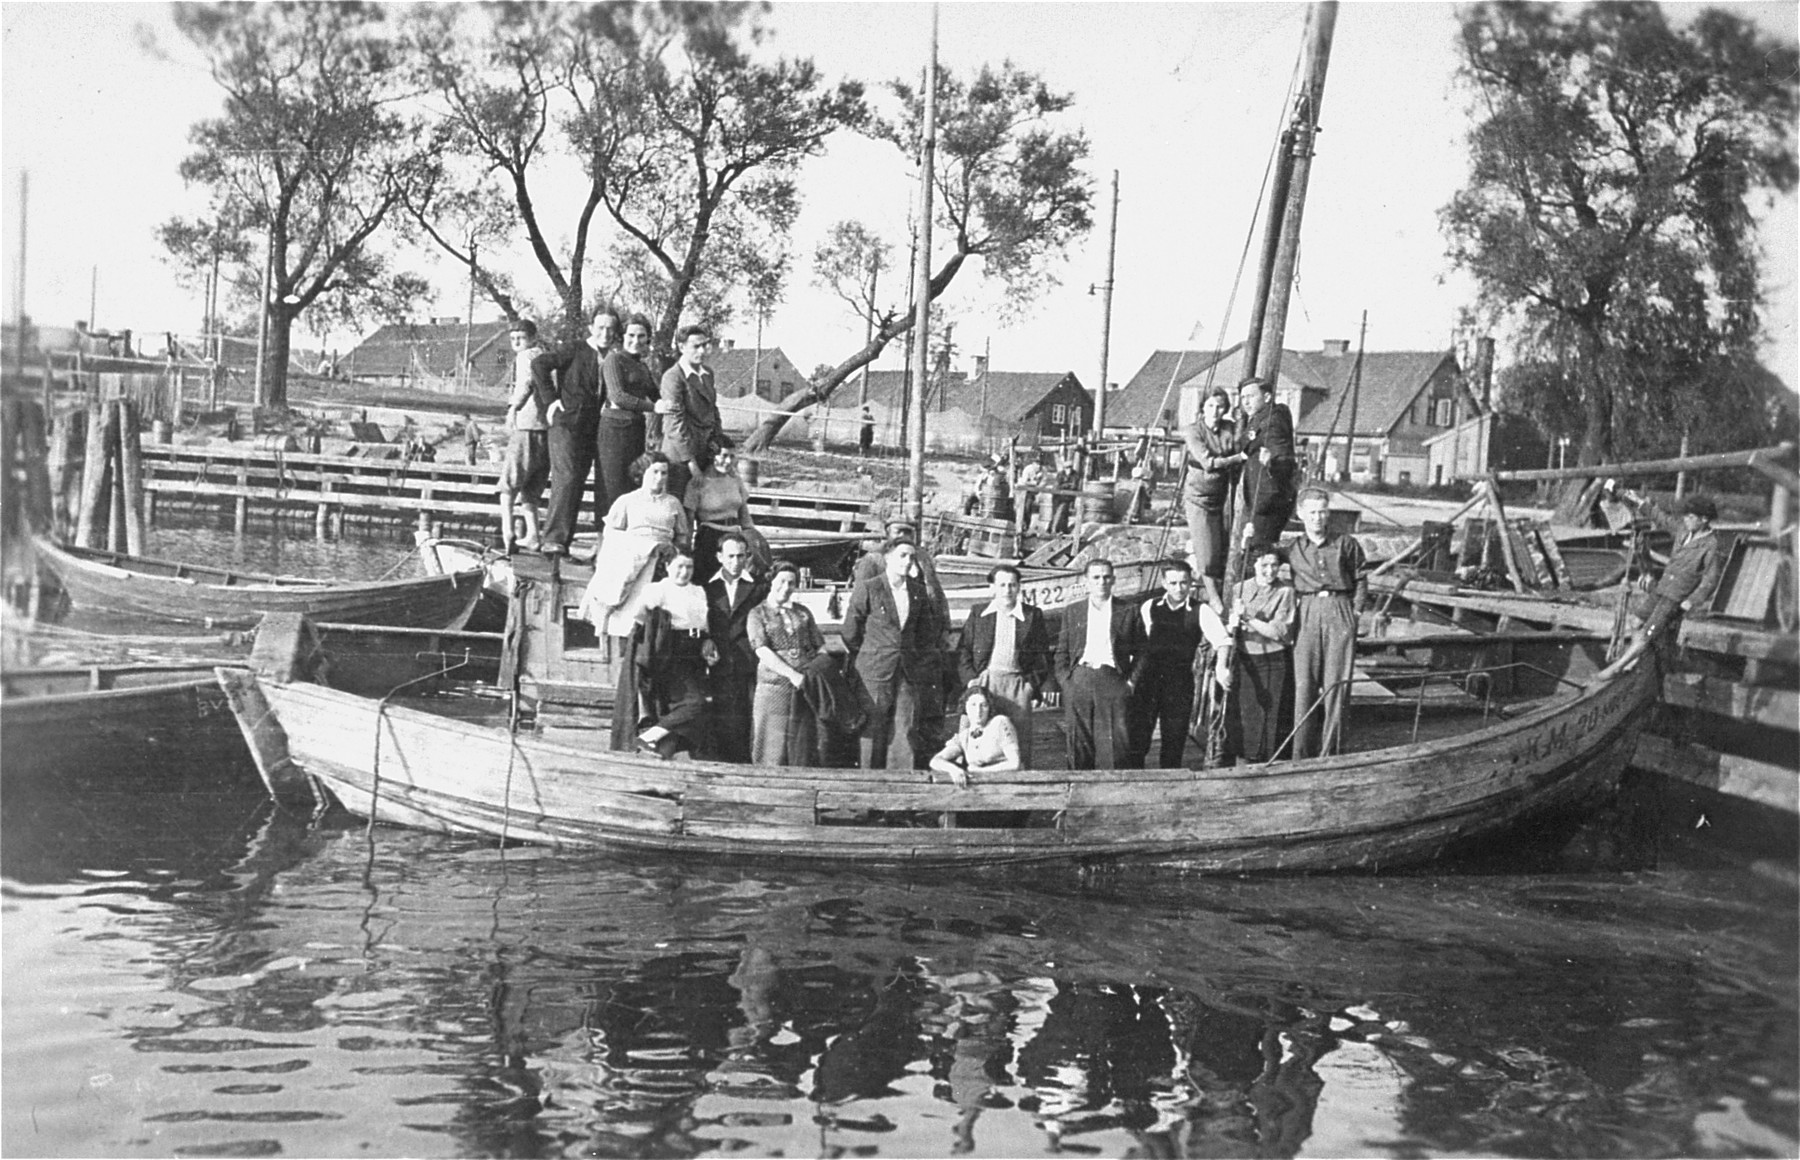 Eliezer Kaplan poses with friends from the Zionist movement in a fishing boat anchored at a small boating dock in a Lithuanian village.